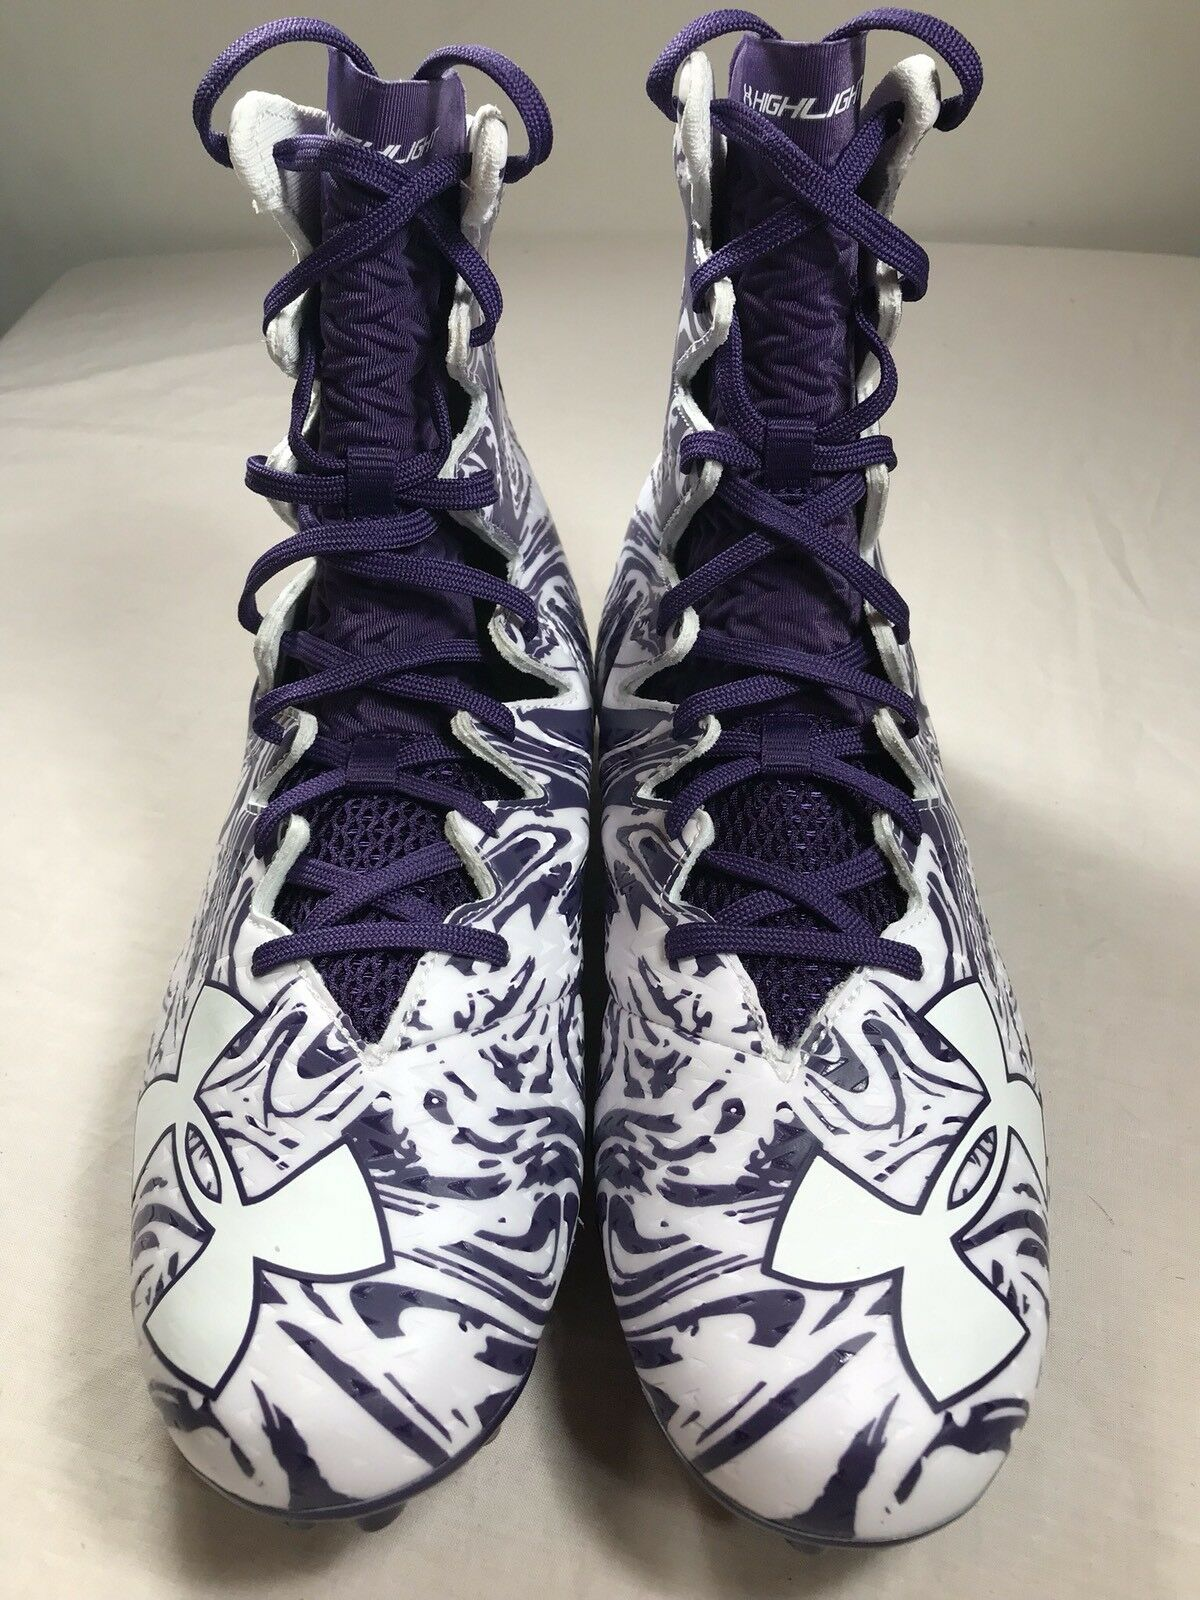 Under Armour Highlight LUX MC Football Cleats Cleats Cleats viola/bianca 1297953-511 Sz. 11.5 4ea0fe